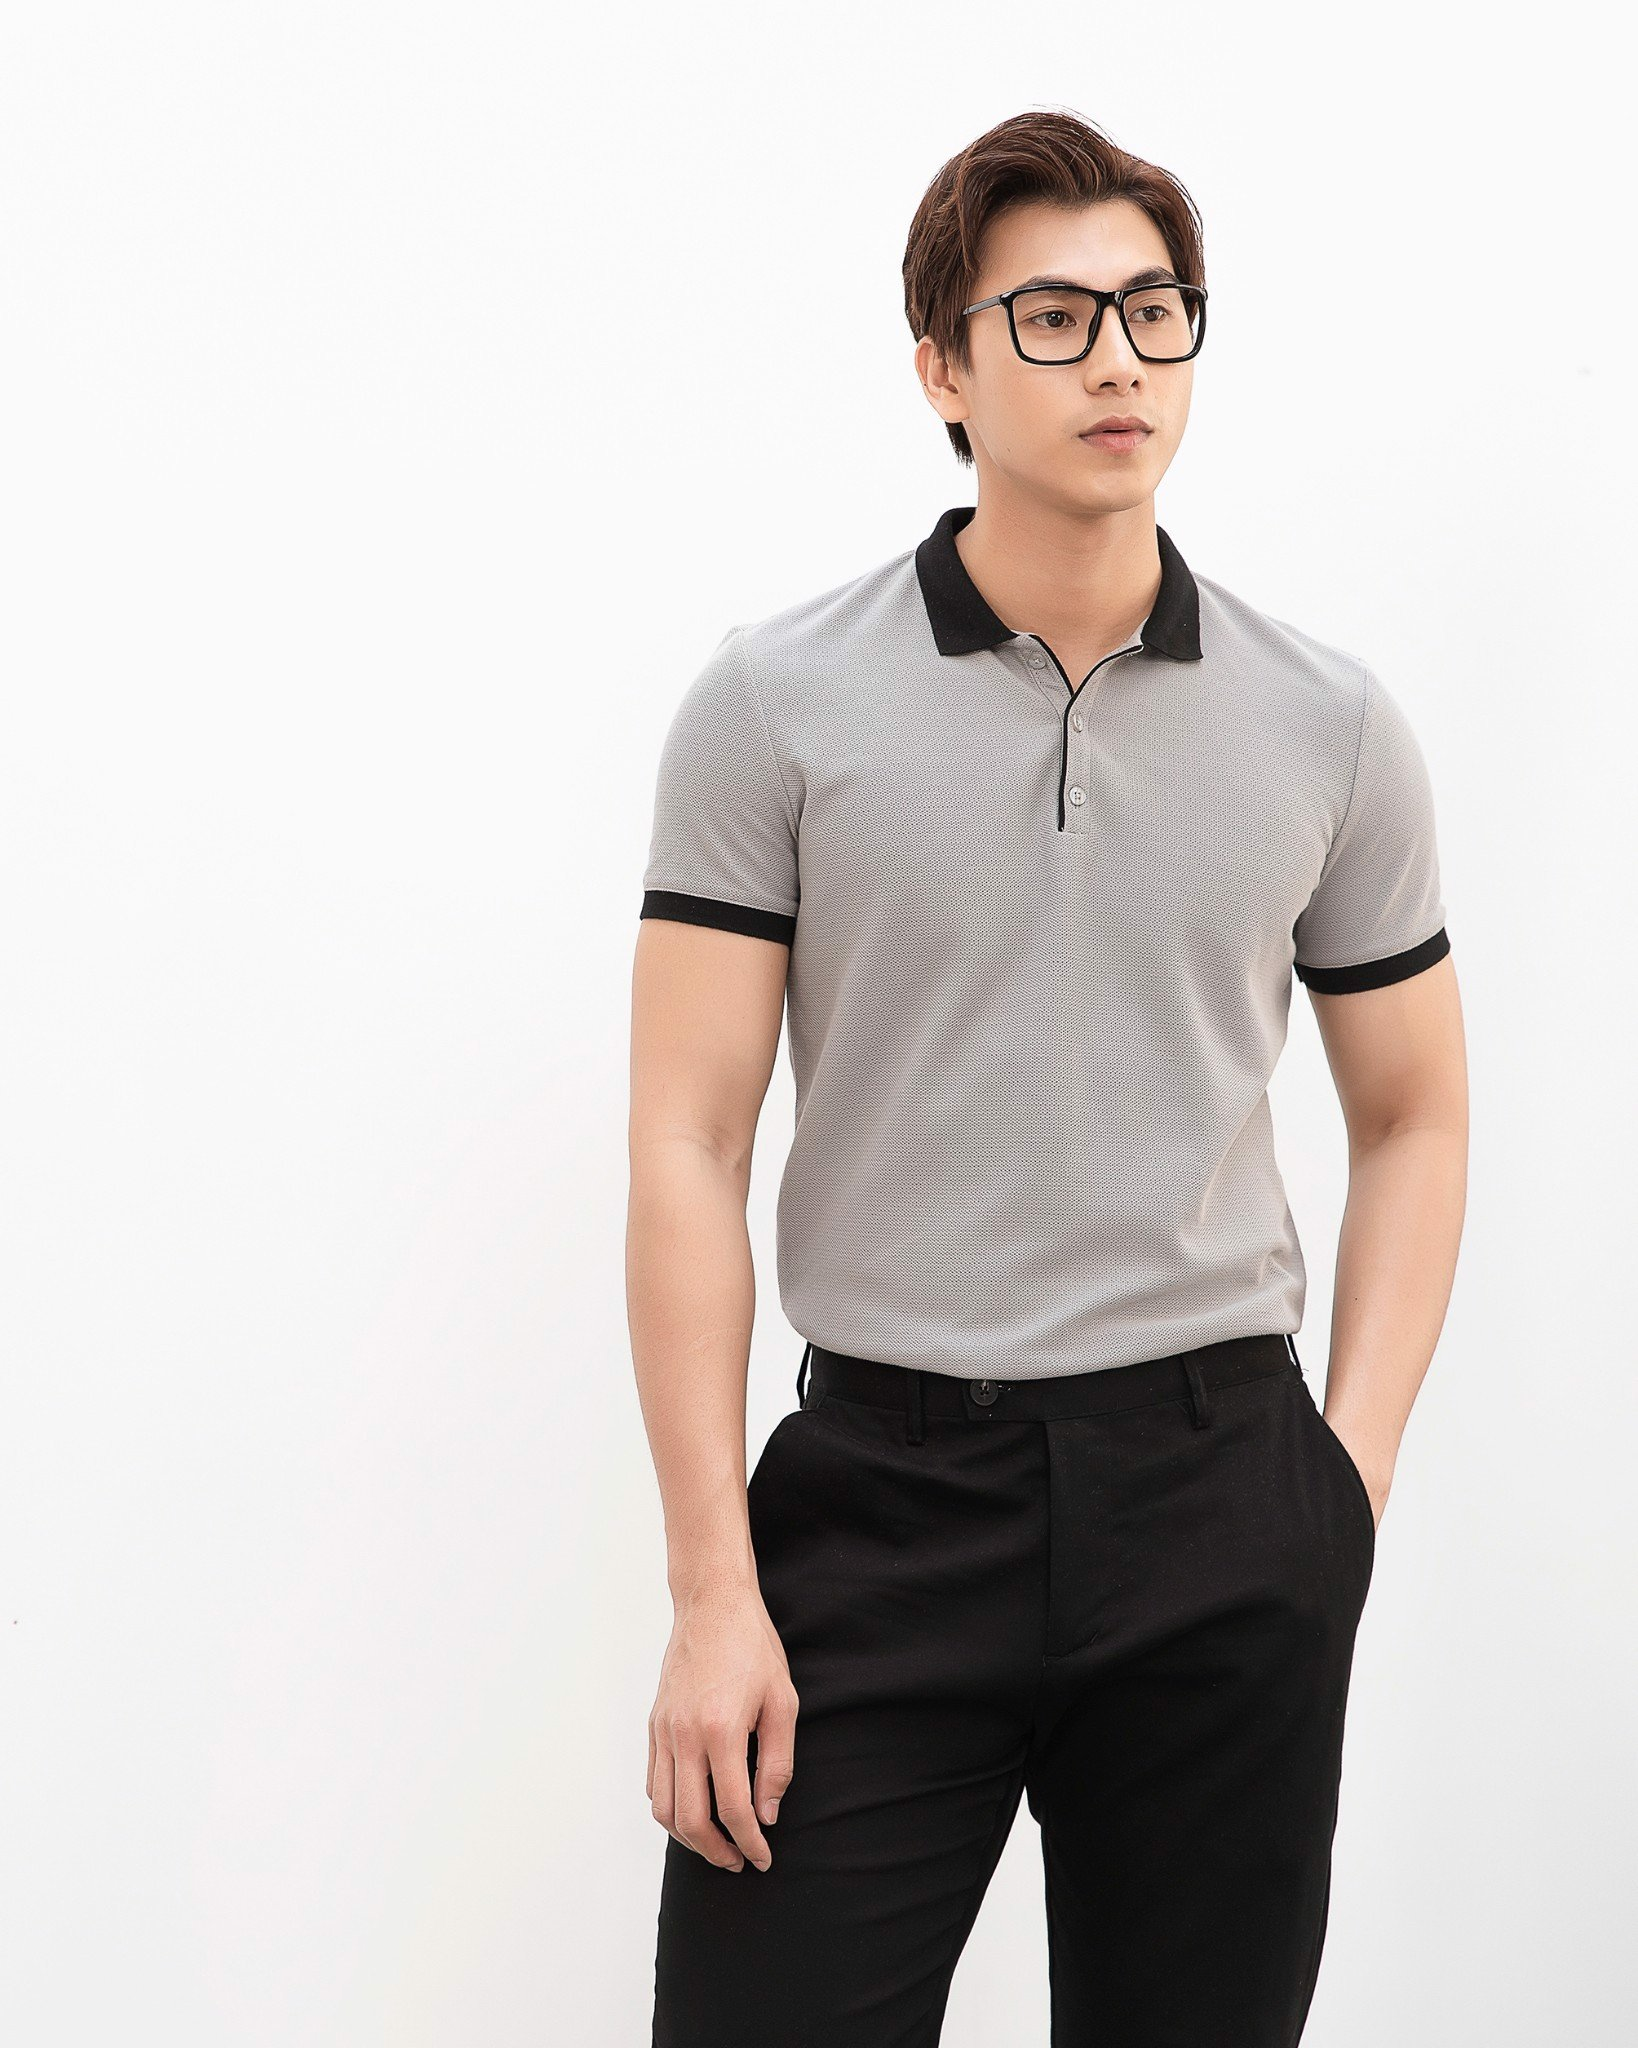 Premium Fabric Polo Tees 19275